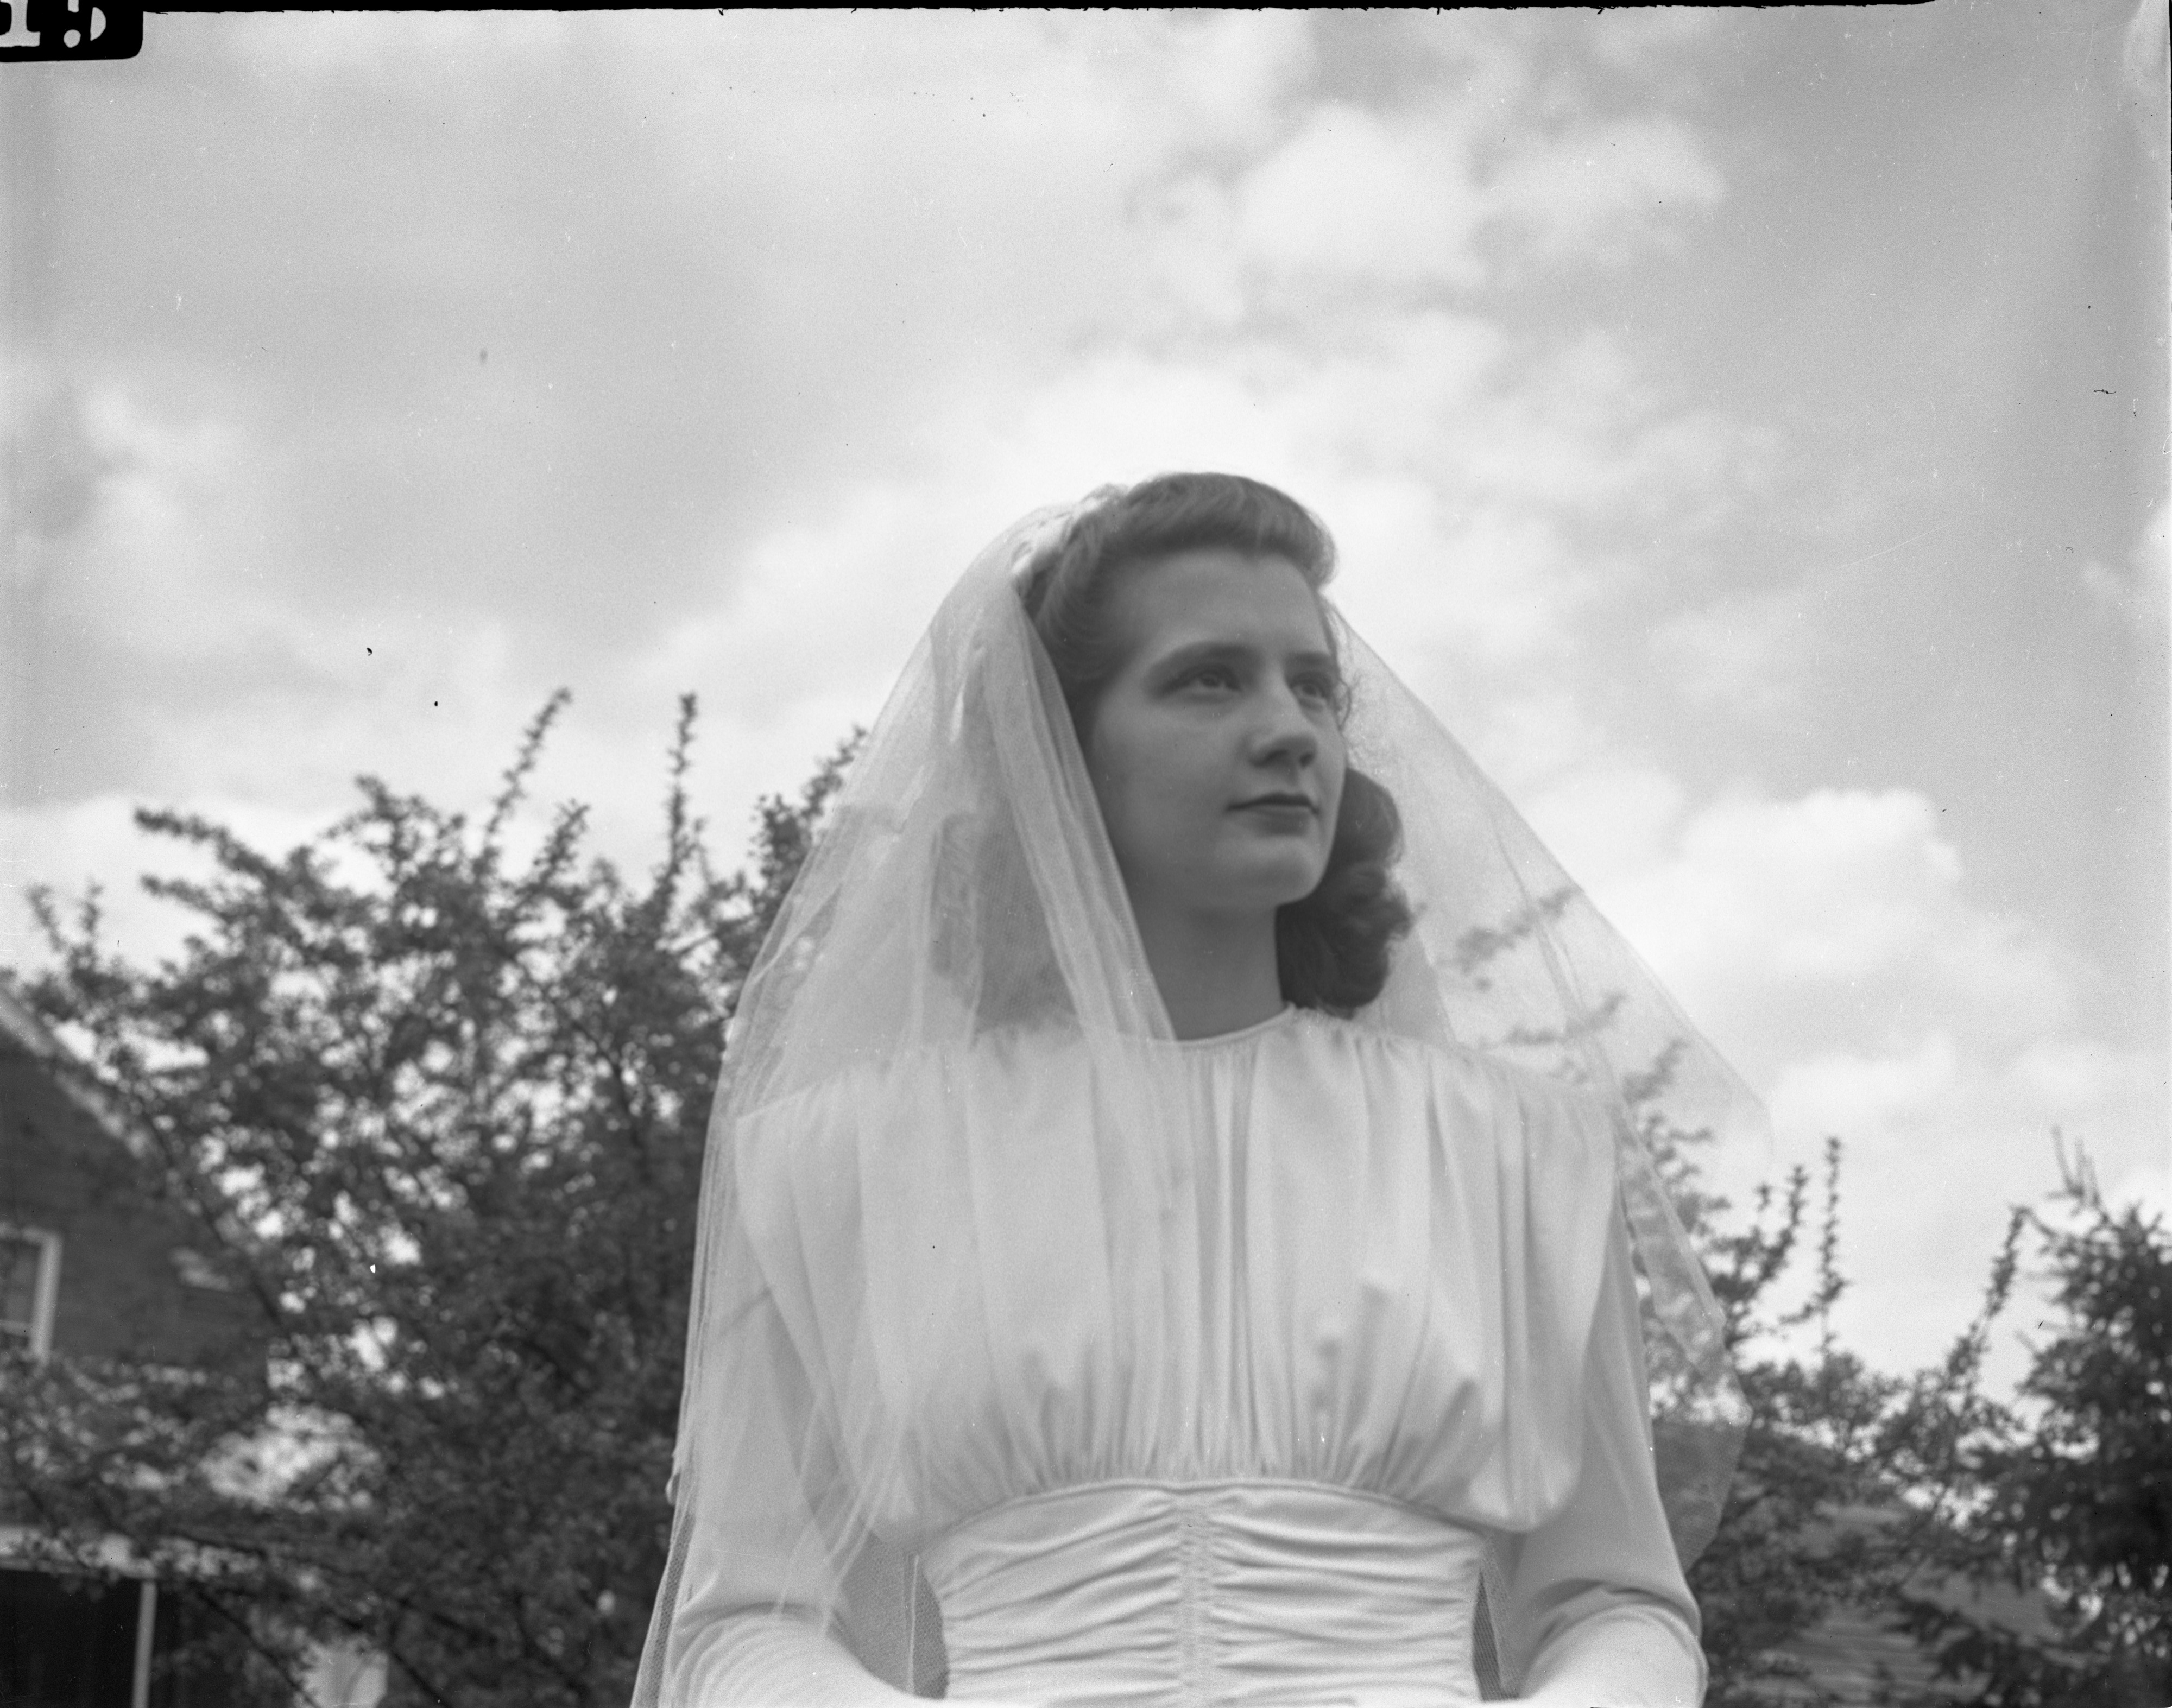 Eleanor Barker, Fiancée Of Ernest Hardin, Models The Wedding Gown She Will Wear At Their Overseas Wedding, April 1946 image